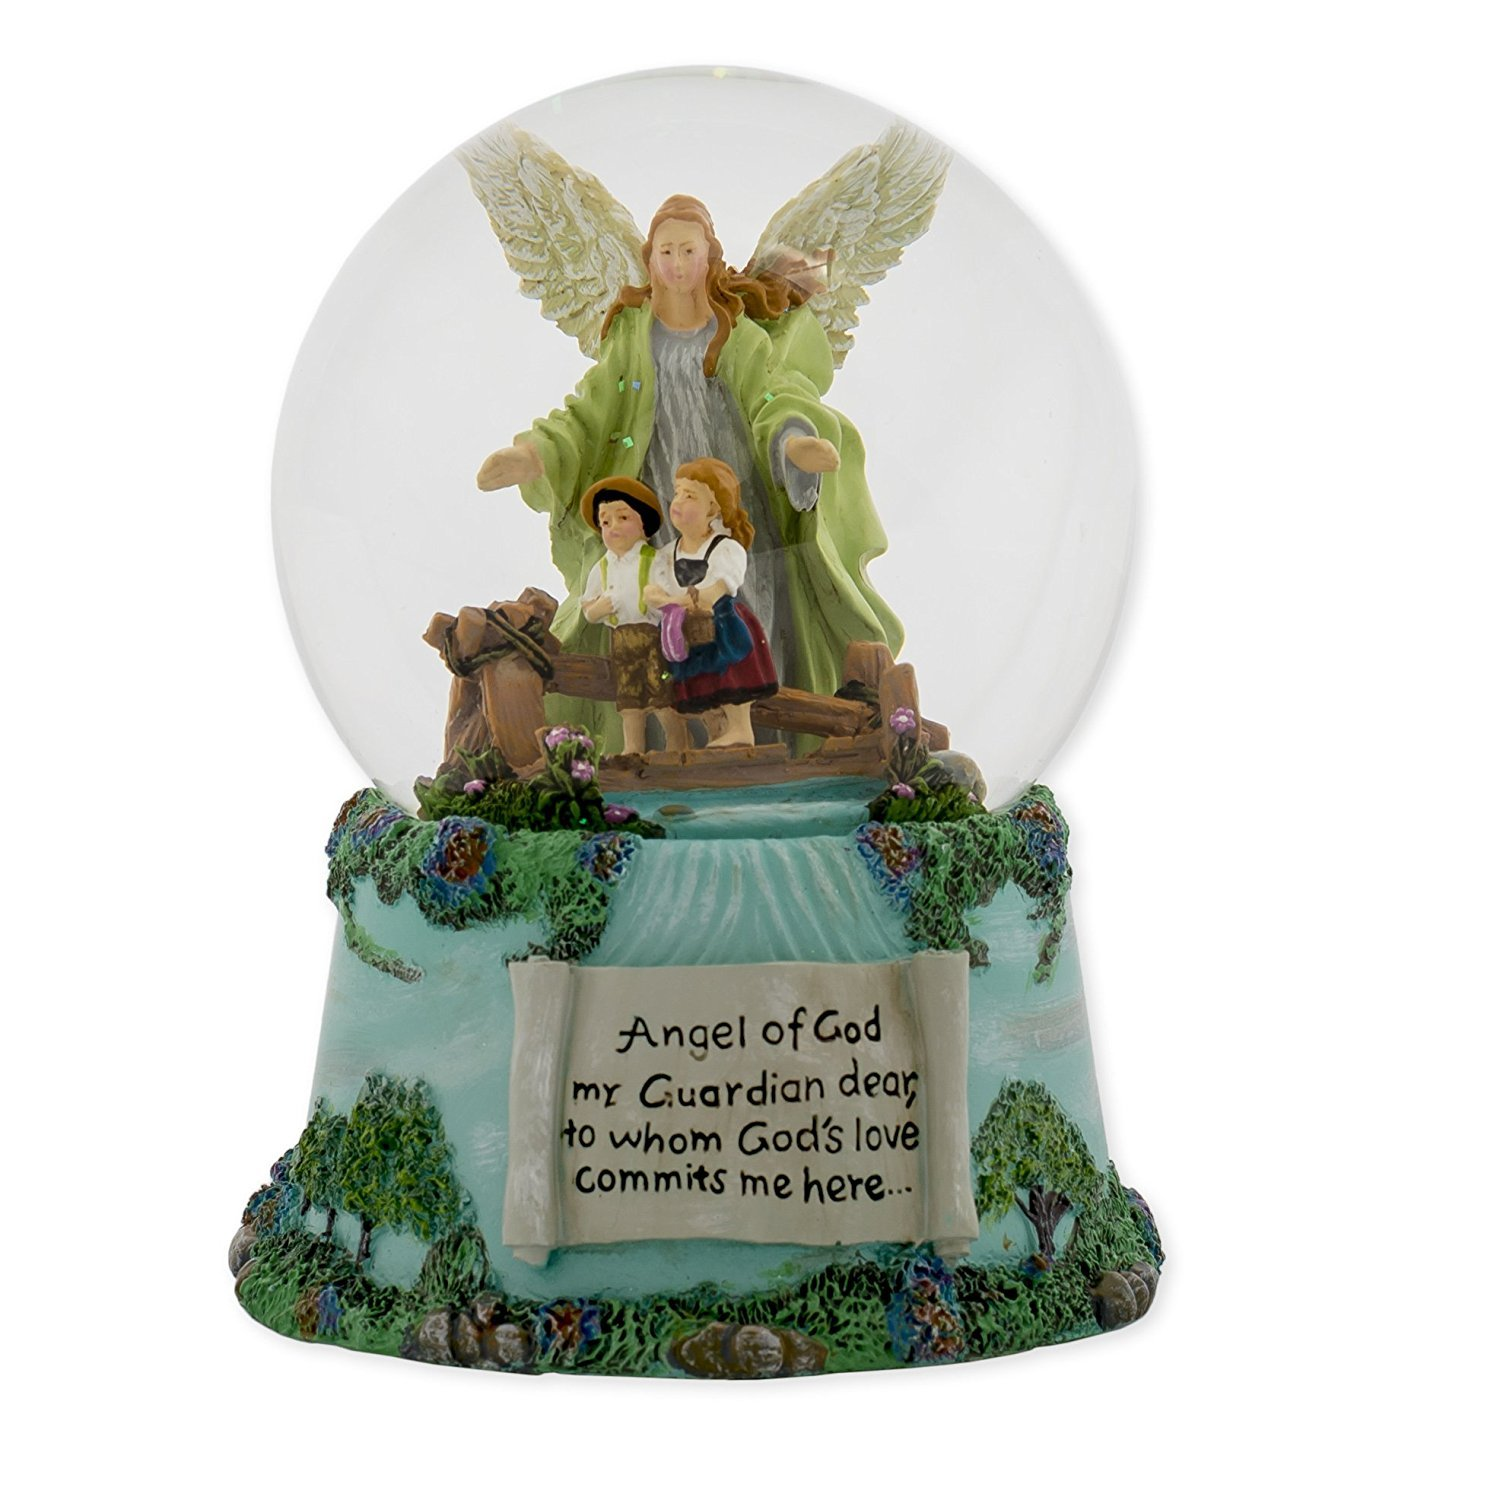 Roman Guardian Angel and Children 100MM Musical Water Globe Plays Tune Jesus Loves Me